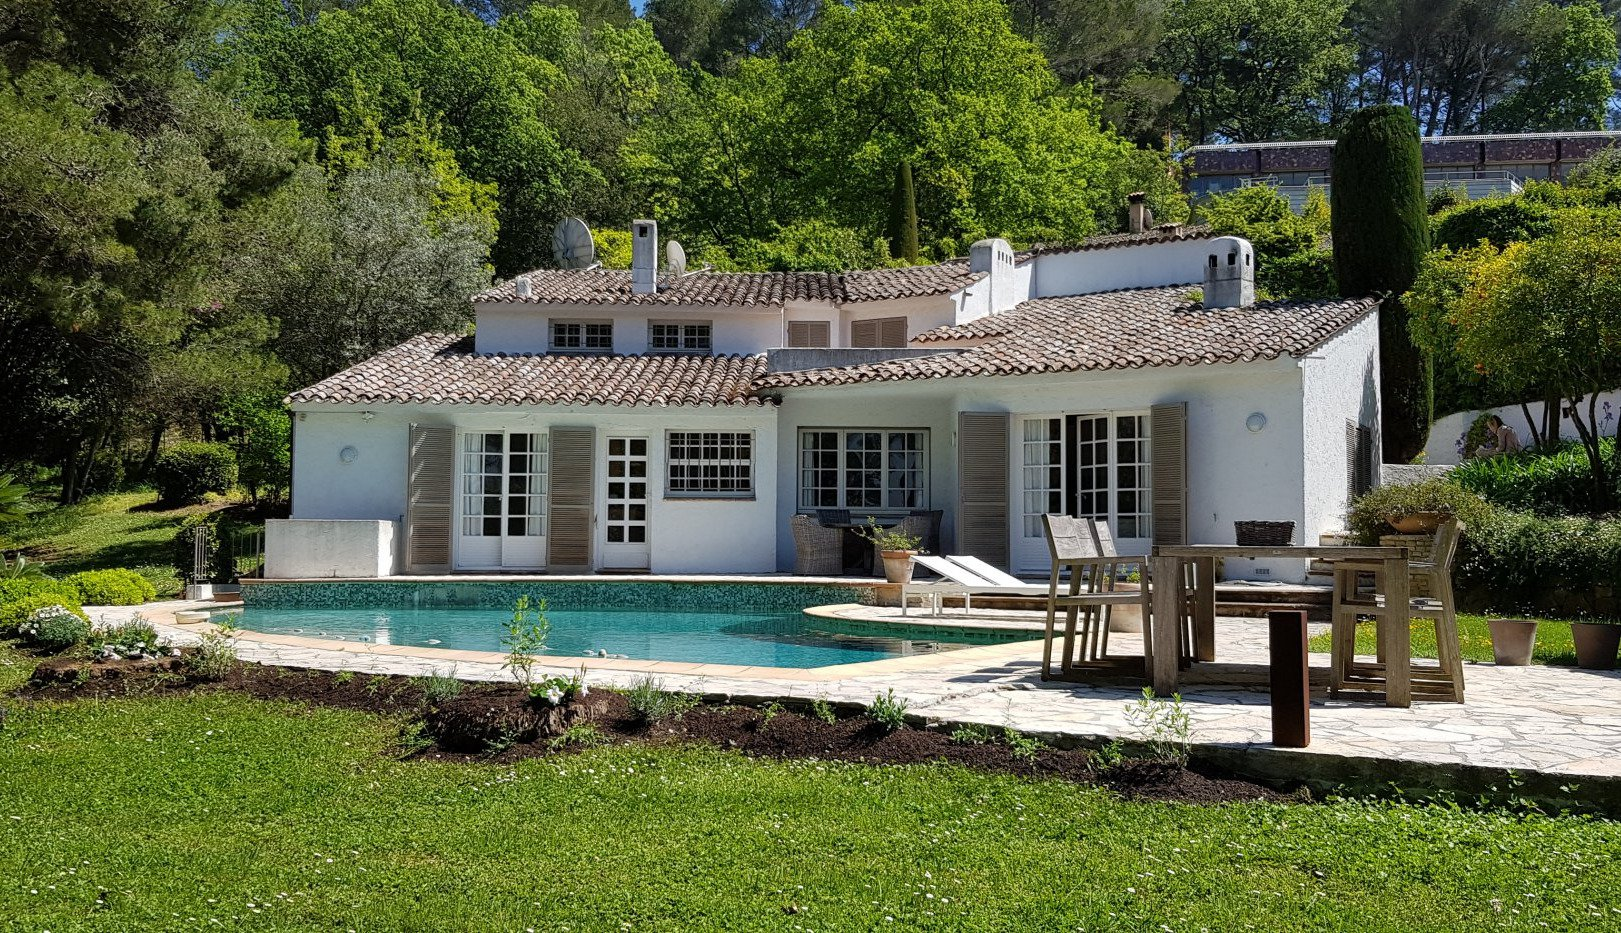 Charming home close to the pricuresque village of Mougins